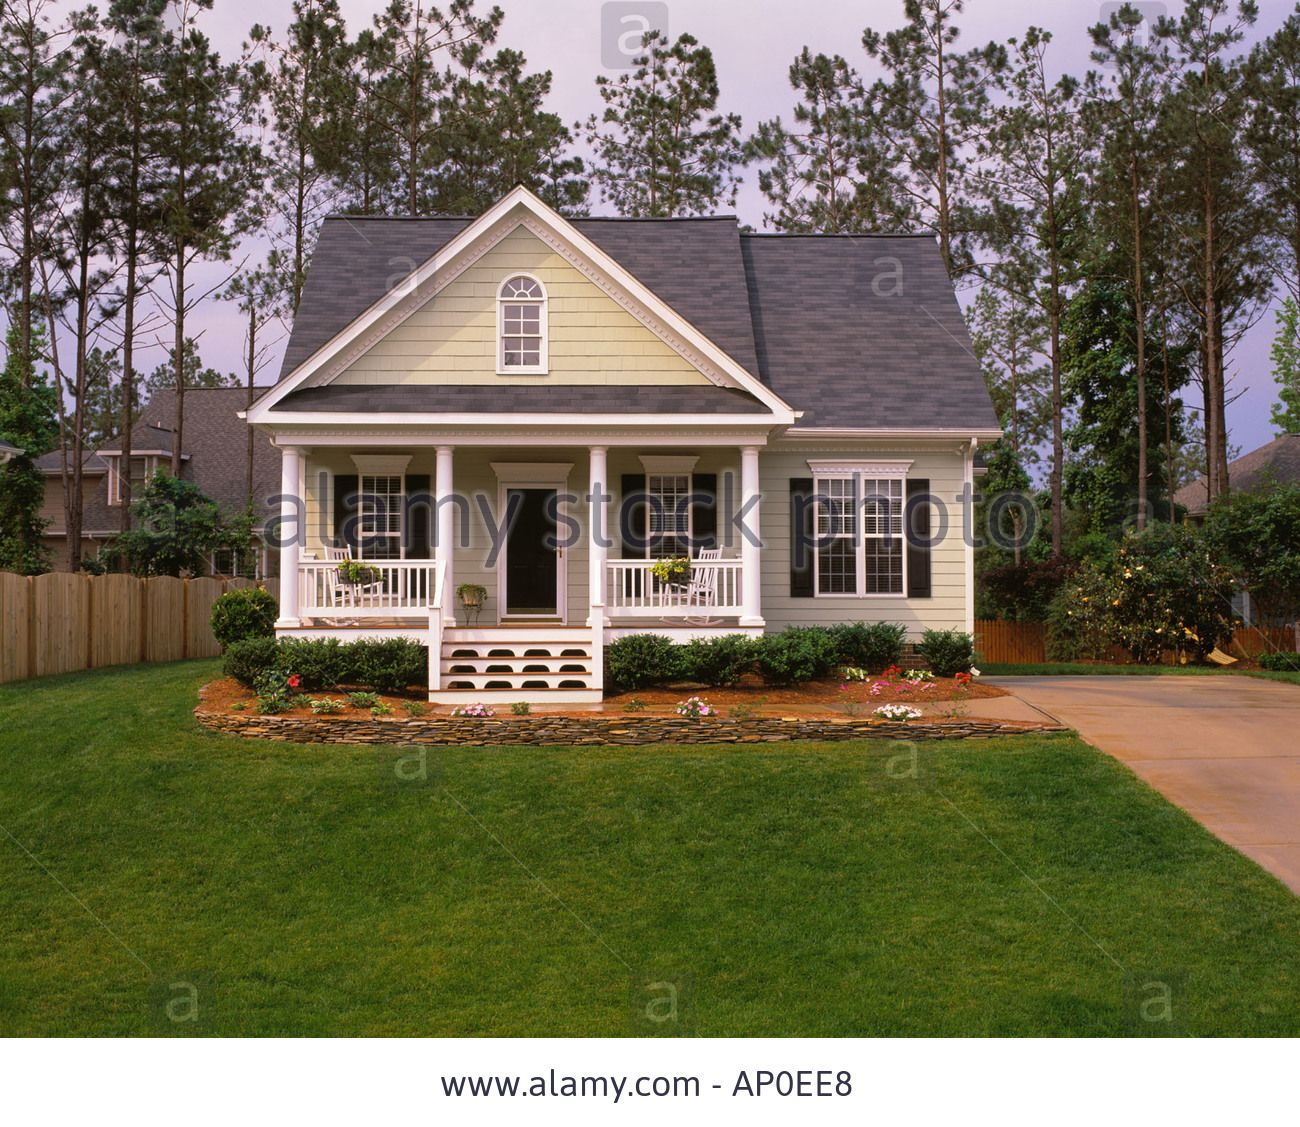 Stock Photo Small Tan House With Black Shutters White Trim And A